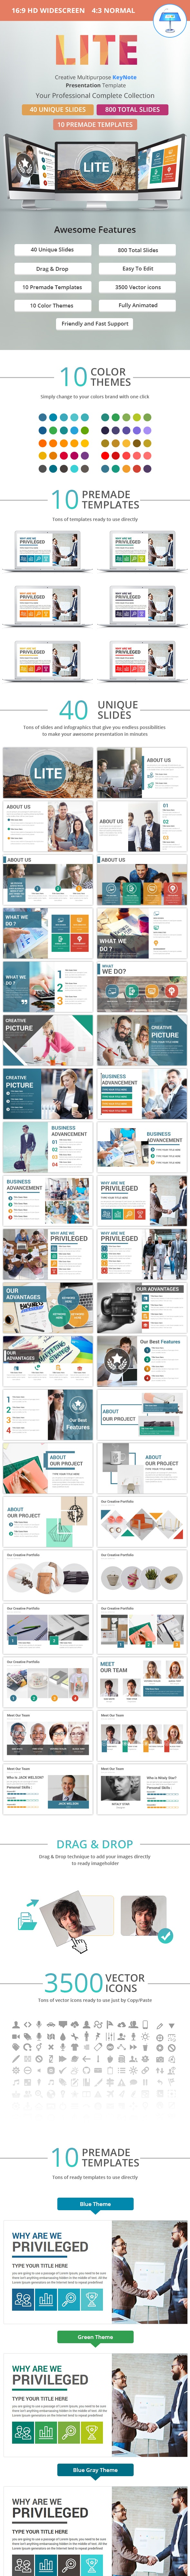 Lite Keynote Presentation Template - Business Keynote Templates